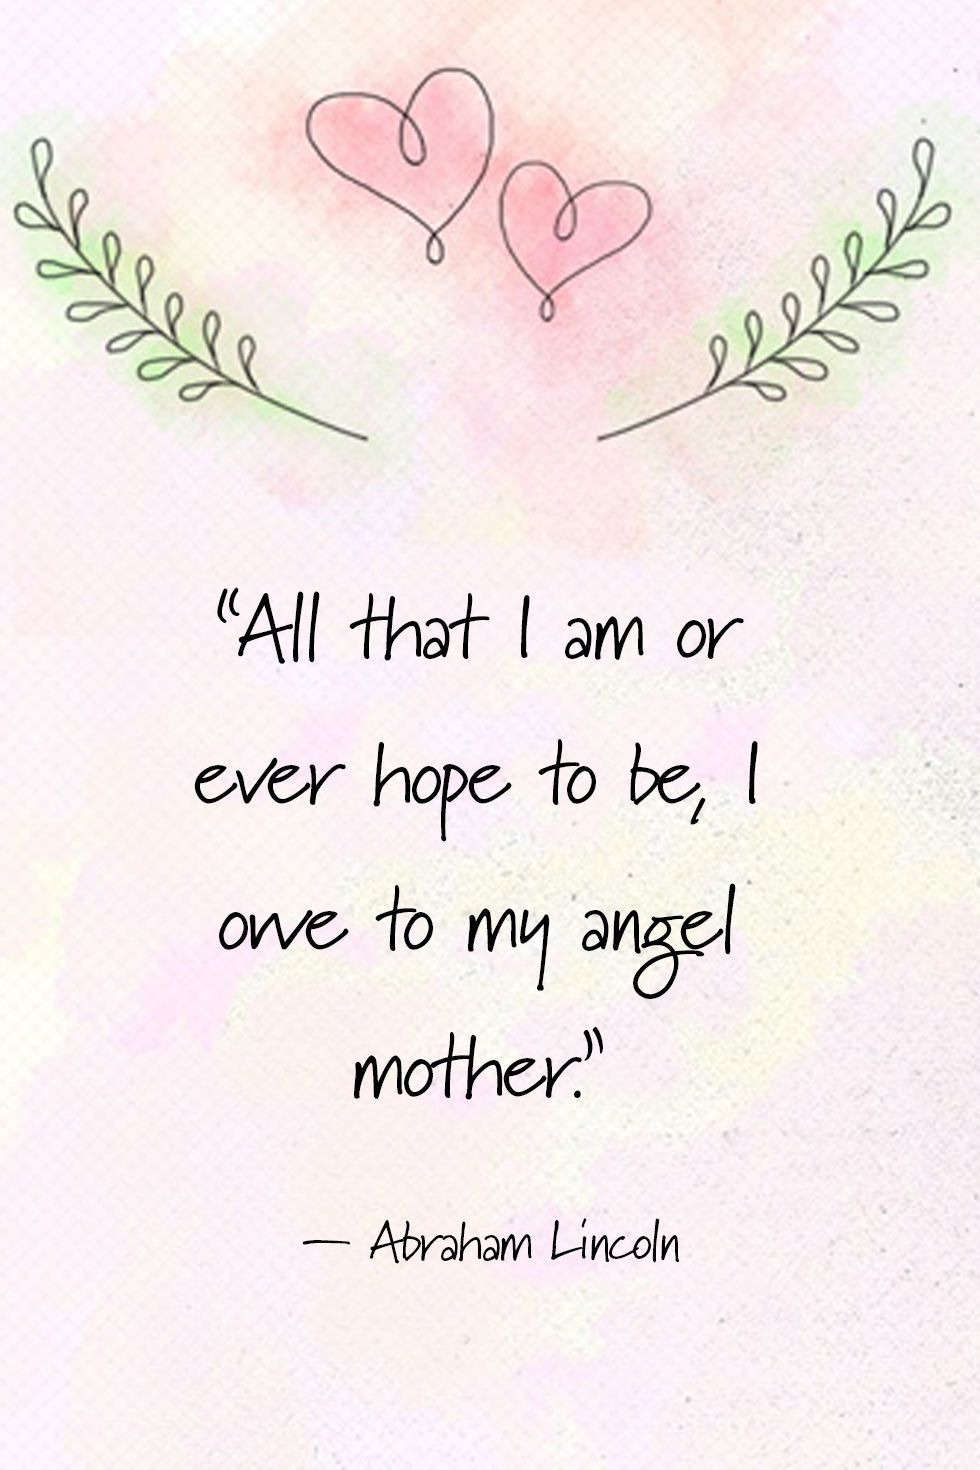 Smile poems and quotes - 15 Touching Mother S Day Poems And Quotes Countryliving Com